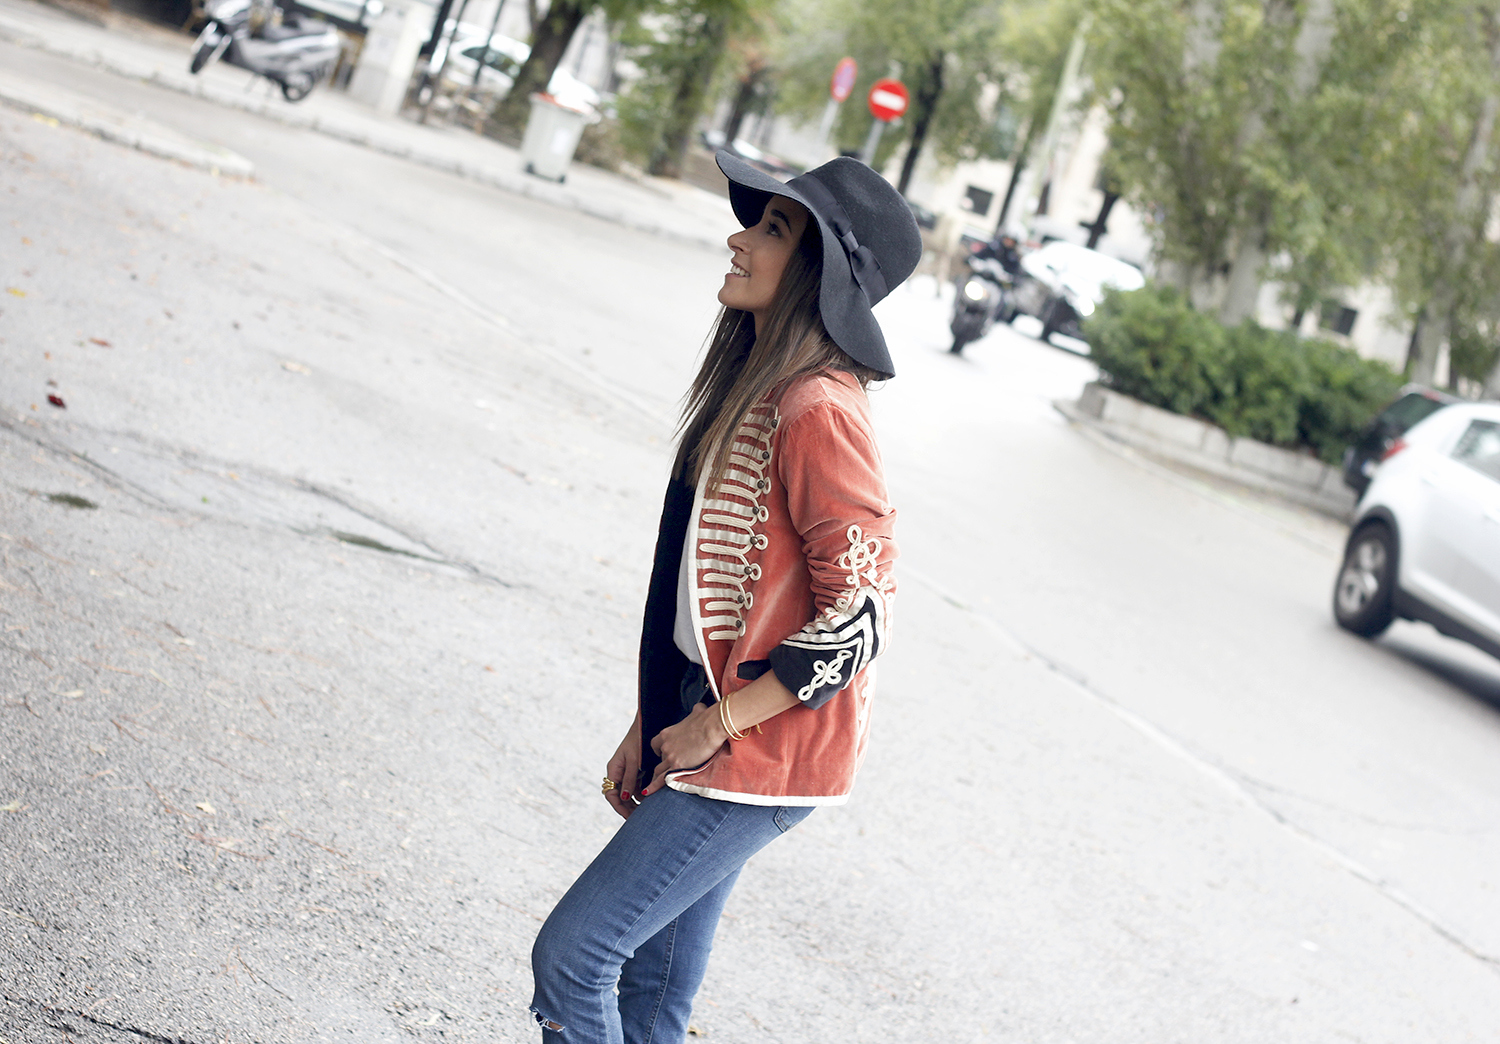 velvet jacket jeans hat rainny day heels accessories outfit style fashion11